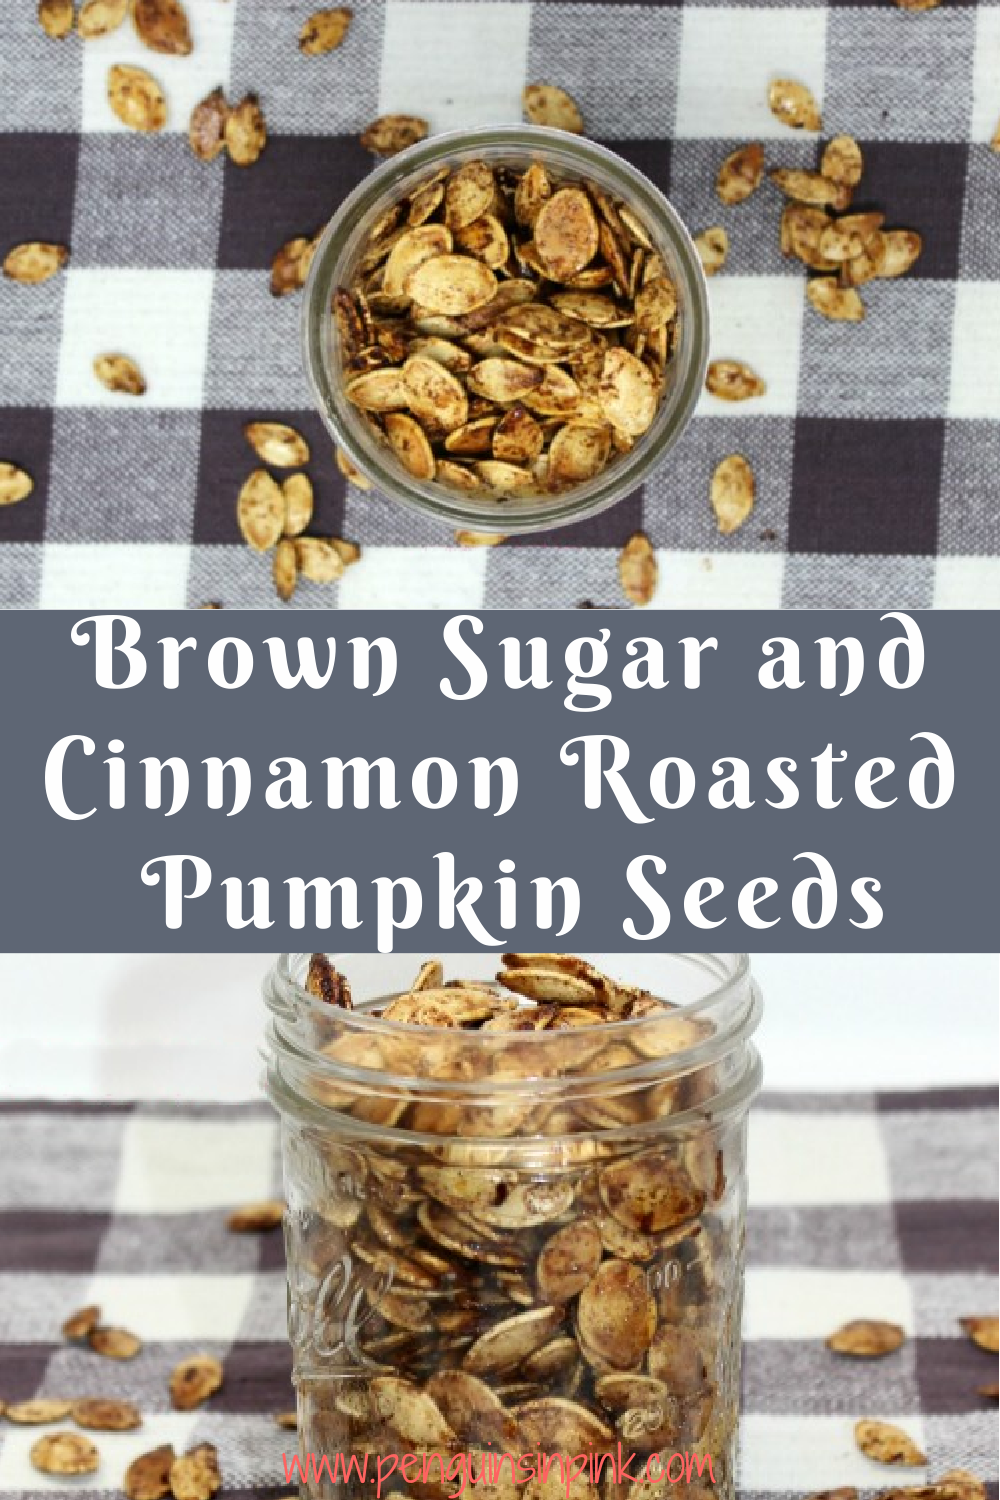 Brown Sugar and cinnamon combine to make a sweet and crunchy roasted pumpkin seeds. Brown Sugar and Cinnamon Roasted Pumpkin Seeds are a great snack that travels well making it perfect for car rides, ball games, hiking, or just watching a movie at home.